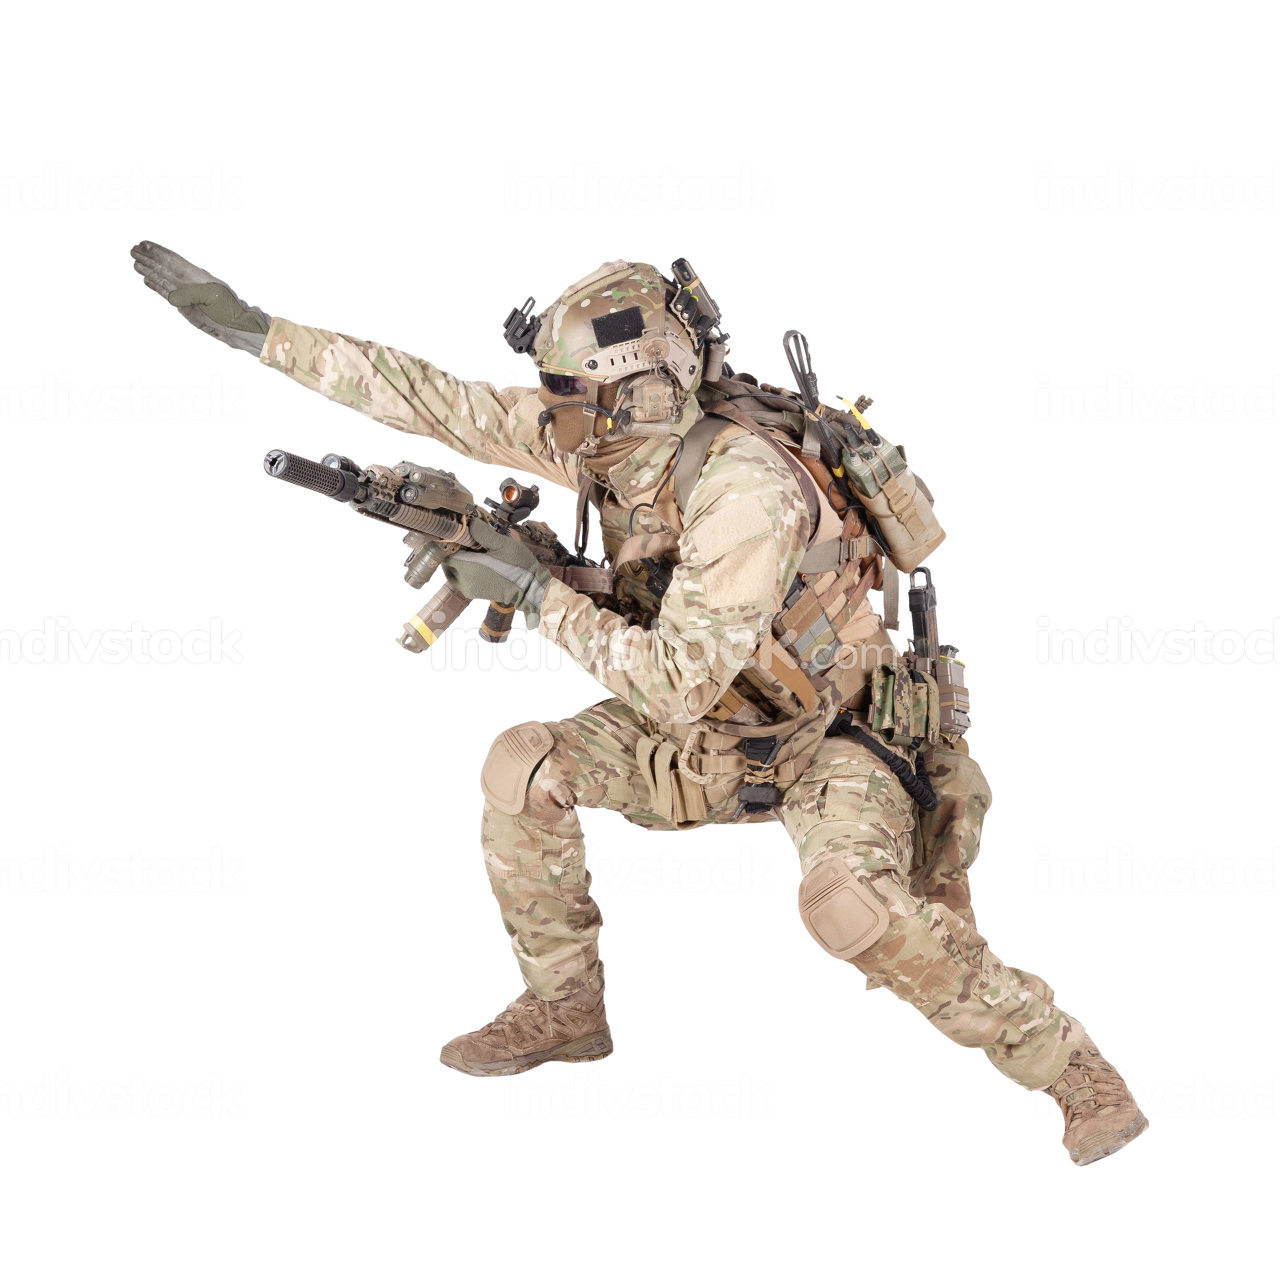 Army soldier, modern combatant, fireteam sergeant in battle uniform and helmet, armed with service rifle, duck under enemy fire, giving follow me arm signal studio shoot isolated on white background